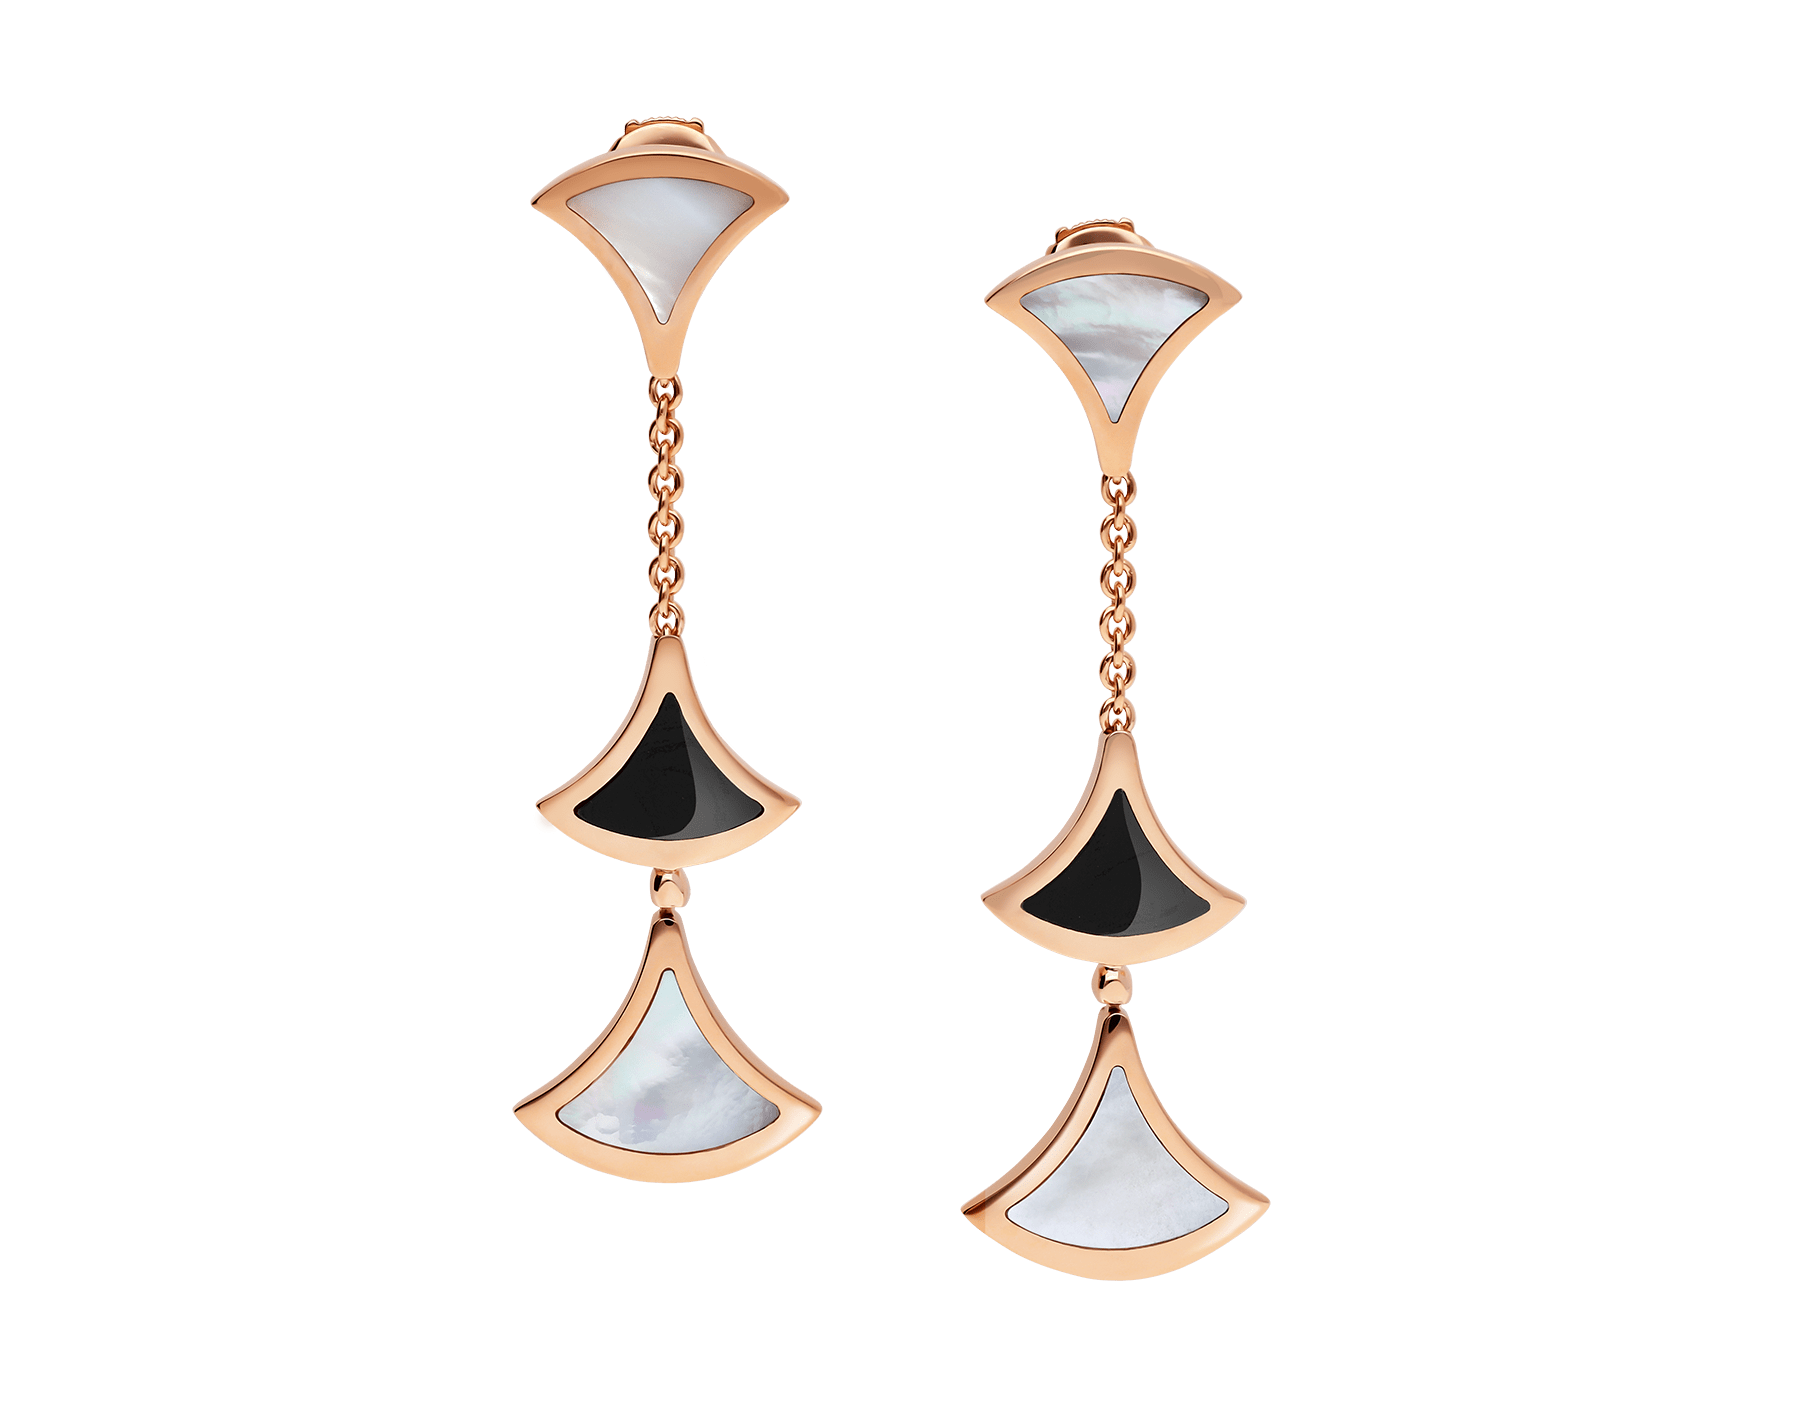 DIVAS' DREAM earrings in 18 kt rose gold set with onyx and mother-of-pearl elements. 350260 image 1